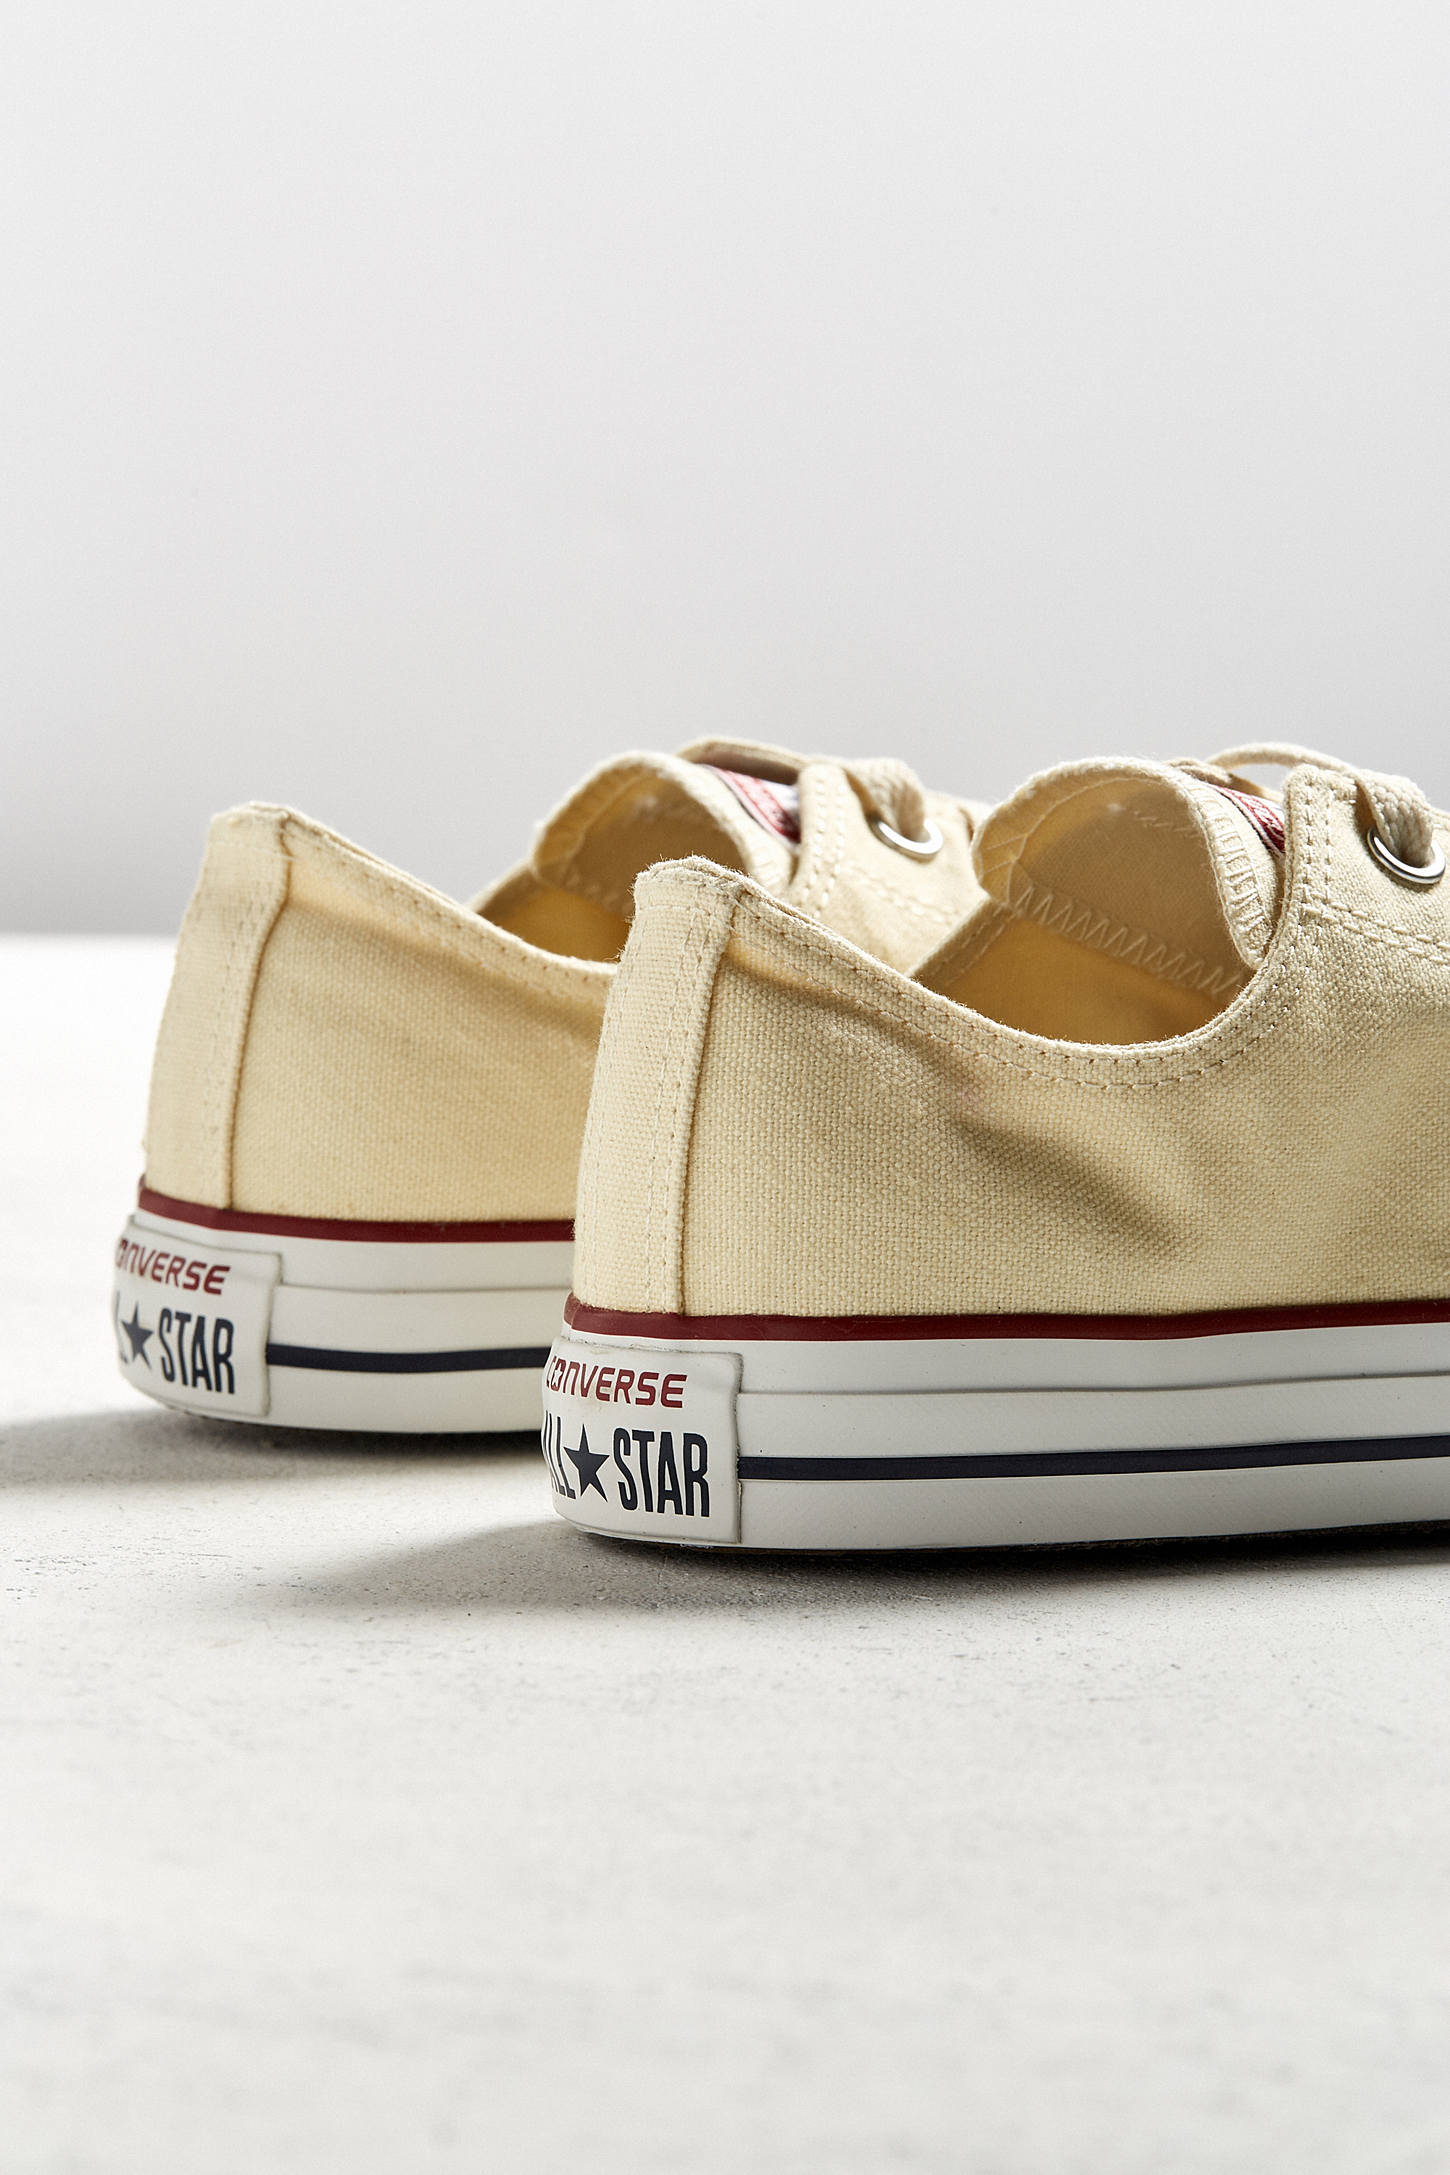 Slide View: 4: Converse Chuck Taylor All Star Low Top Sneaker